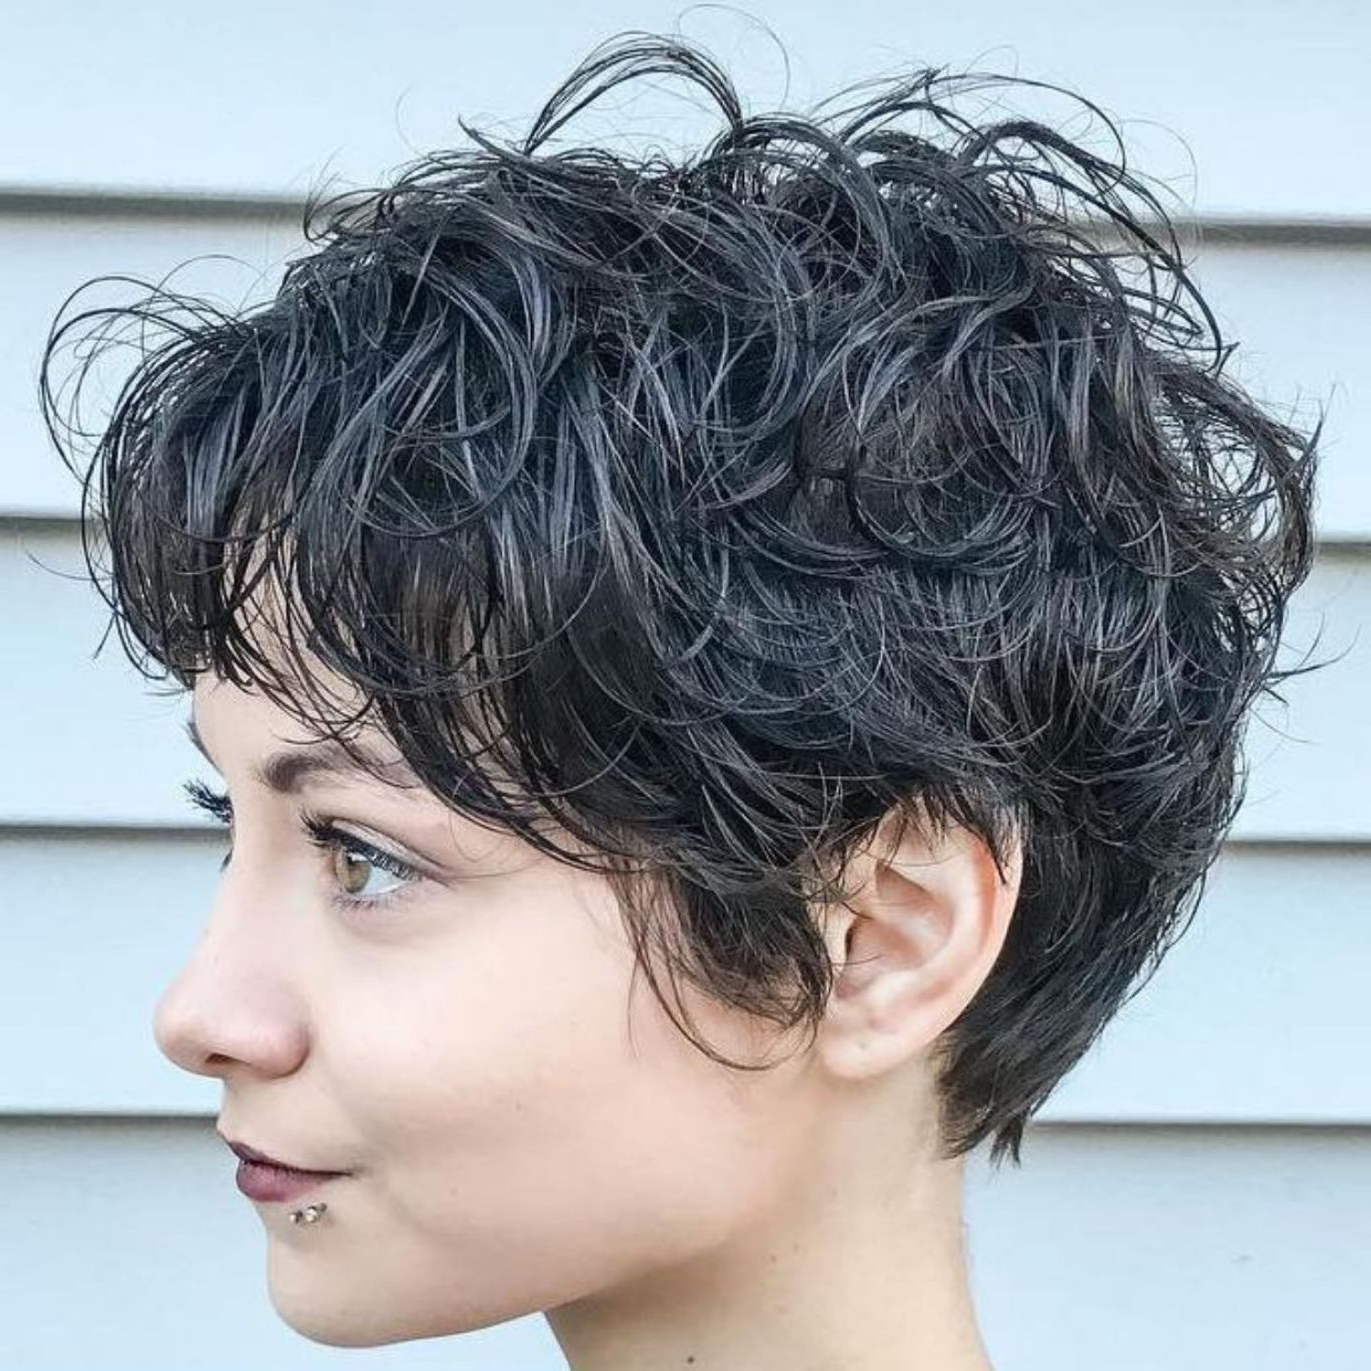 60 Short Shag Hairstyles That You Simply Can't Miss In 2018 | Short Within Long Messy Curly Pixie Haircuts (View 8 of 20)